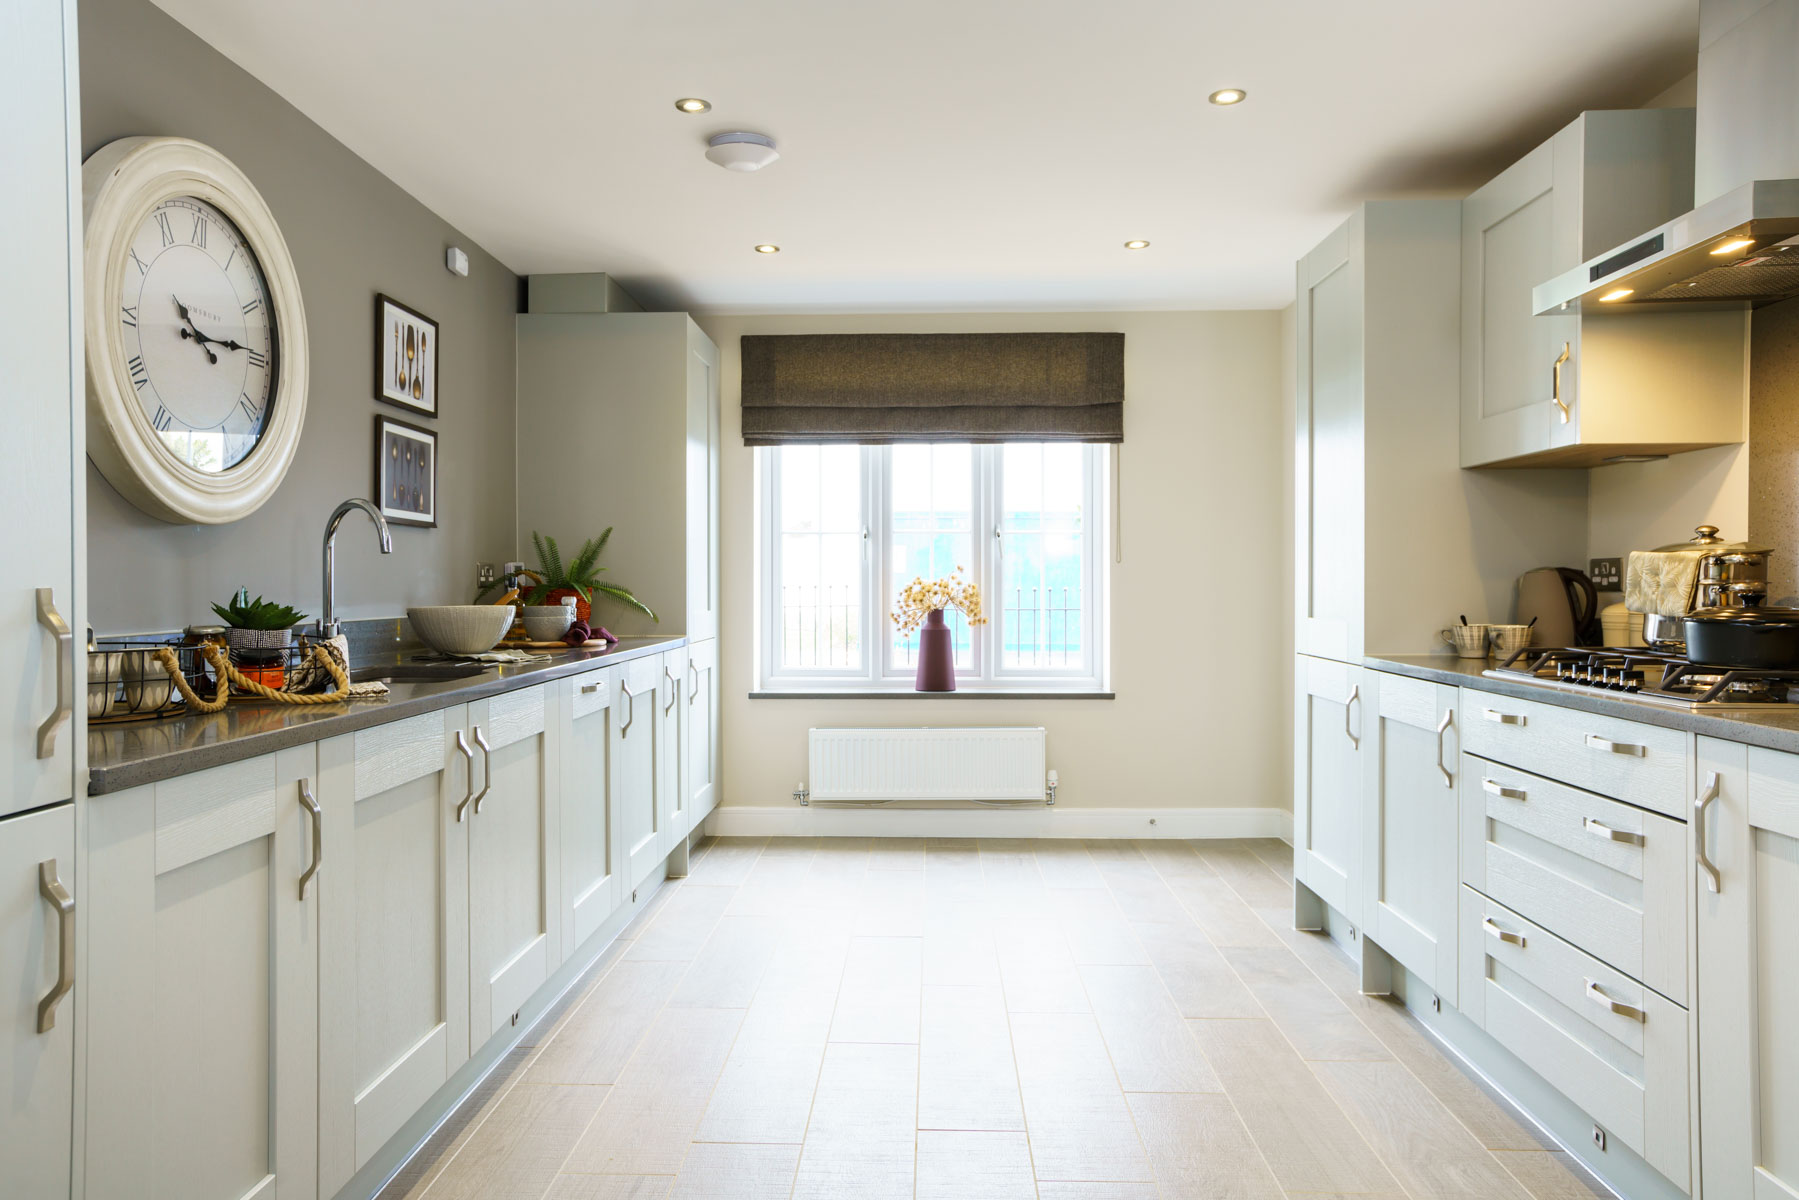 TW Exeter - Mayfield Gardens - Marford example kitchen